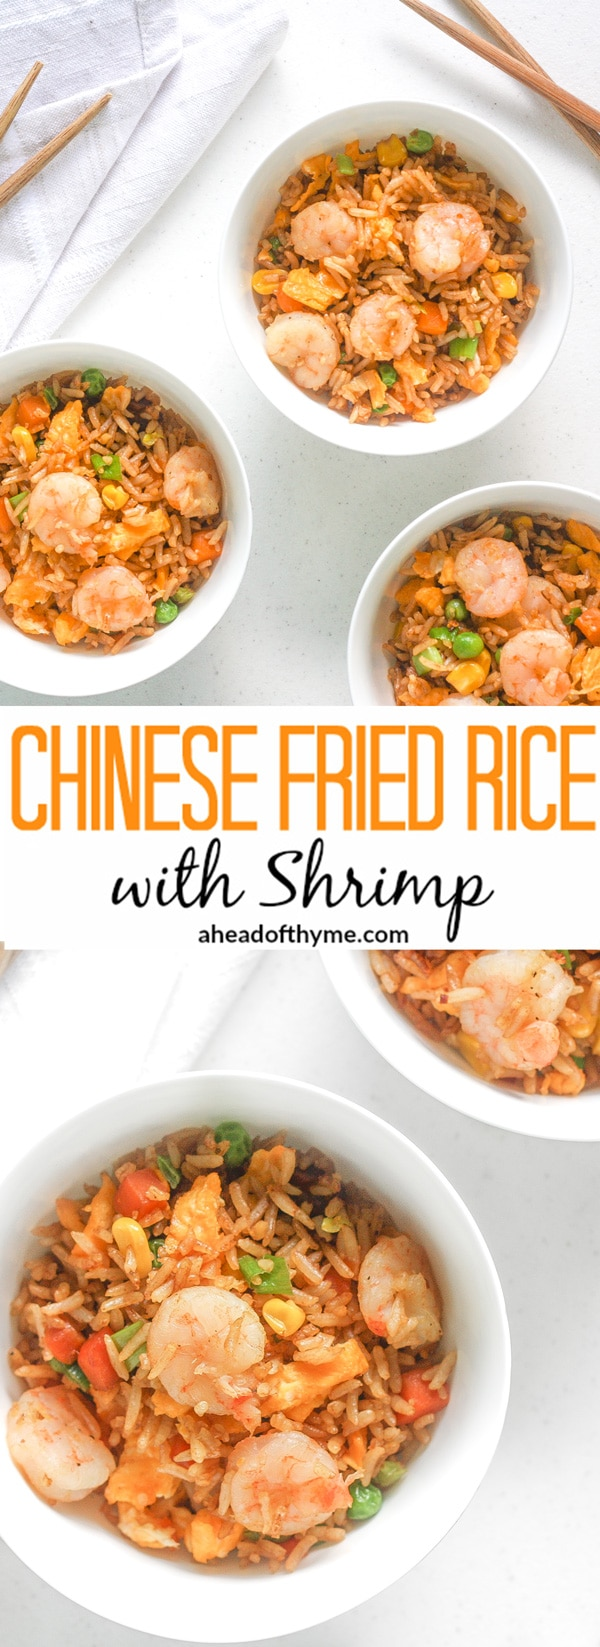 Chinese Fried Rice with Shrimp: Make your own Chinese fried rice with shrimp in 25 minutes, from prep to dinner table, and watch how quickly you will never order take-out again! | aheadofthyme.com